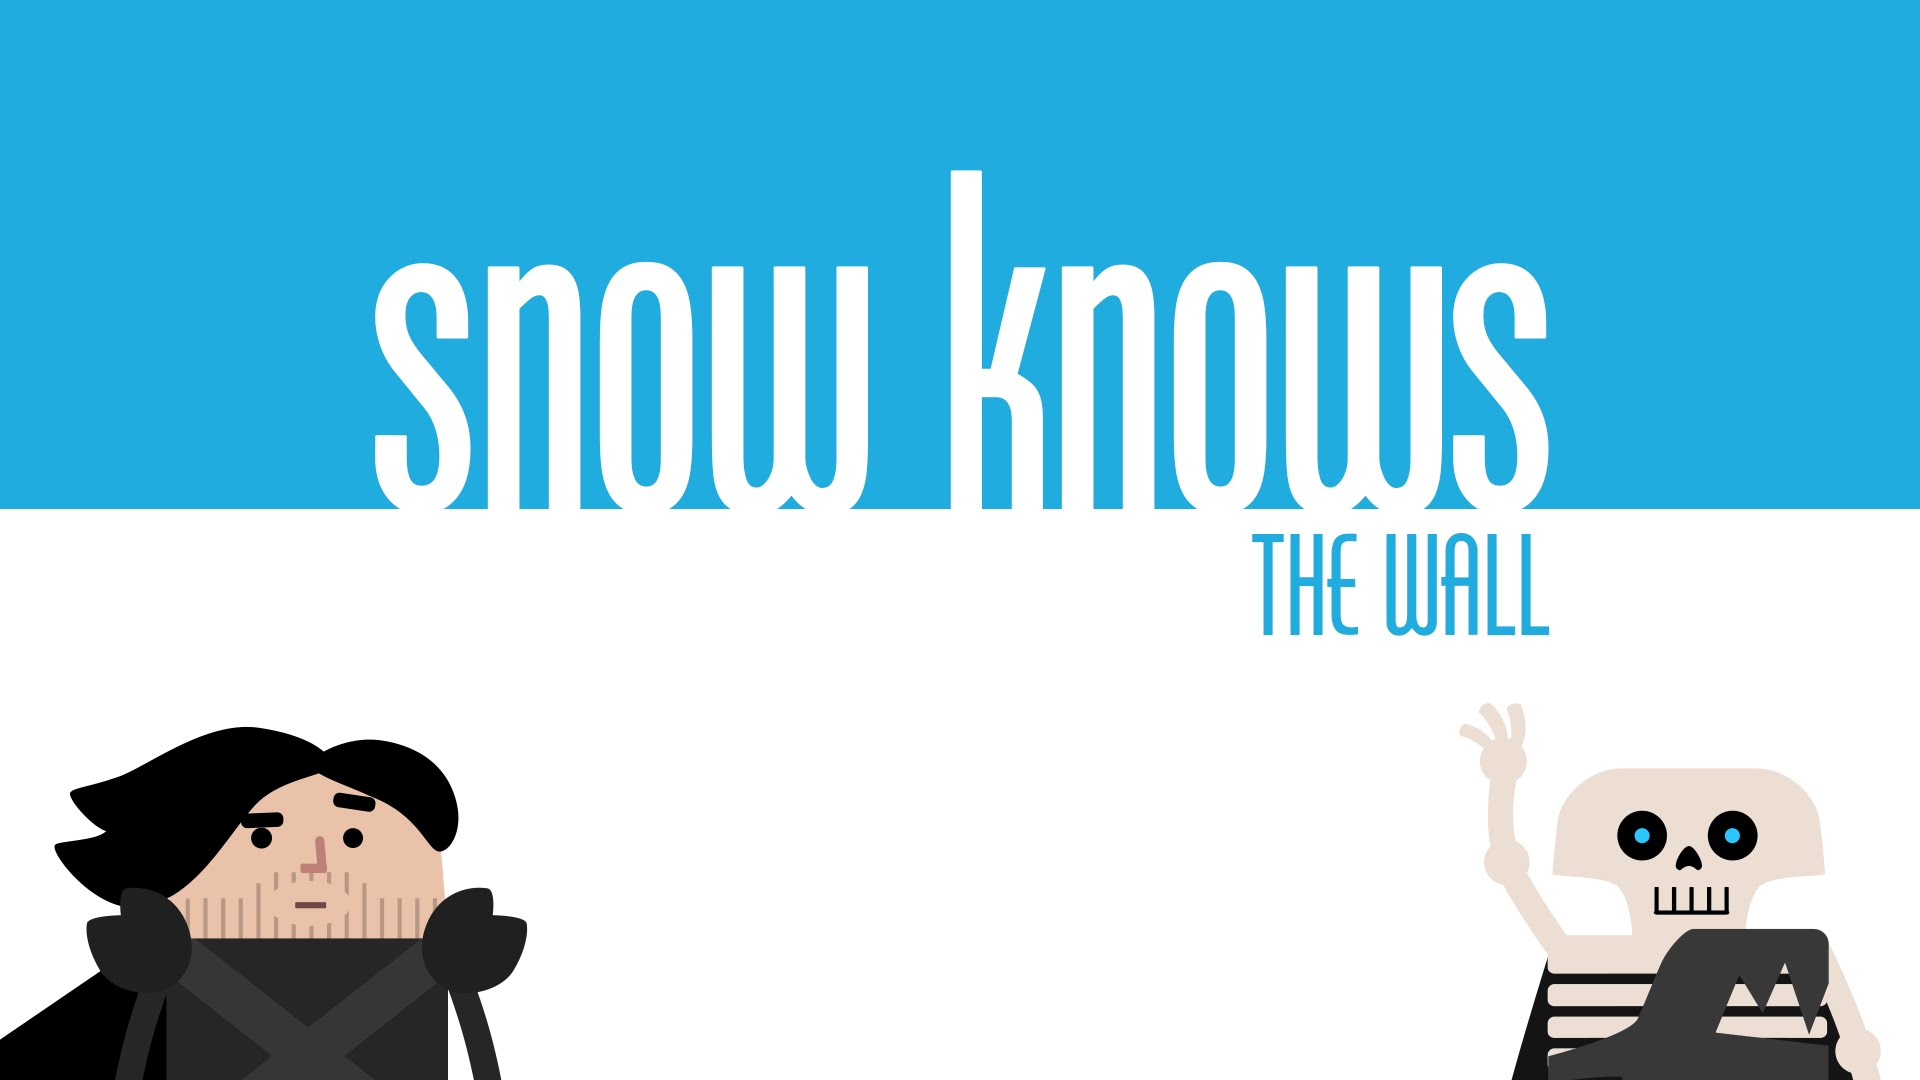 Jon Snow knows nothing, except…